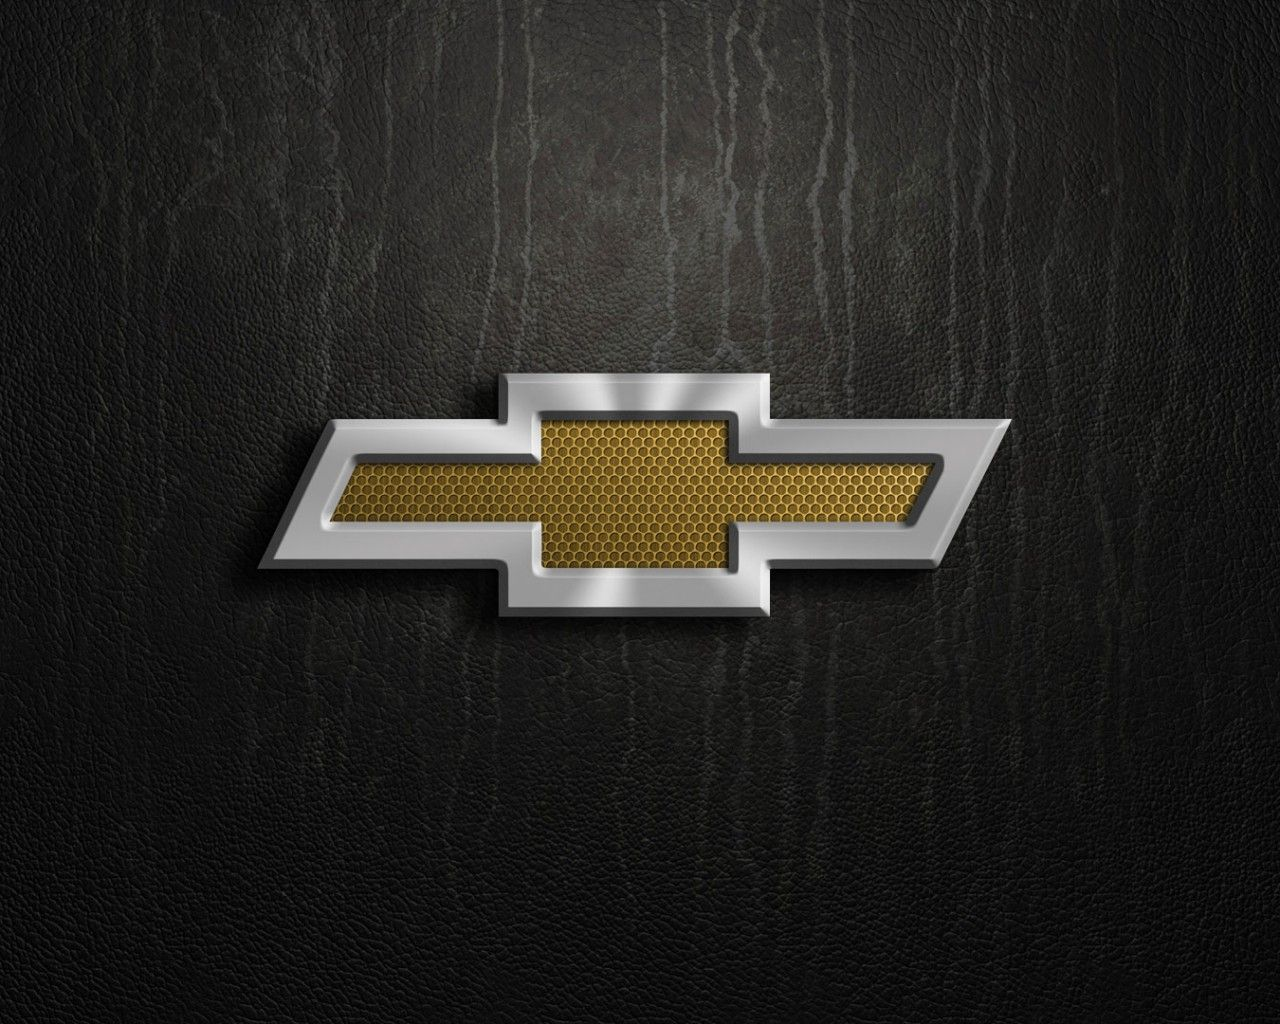 chevy logo wallpaper  chevy logo wallpaper - Google Search | Chevrolet